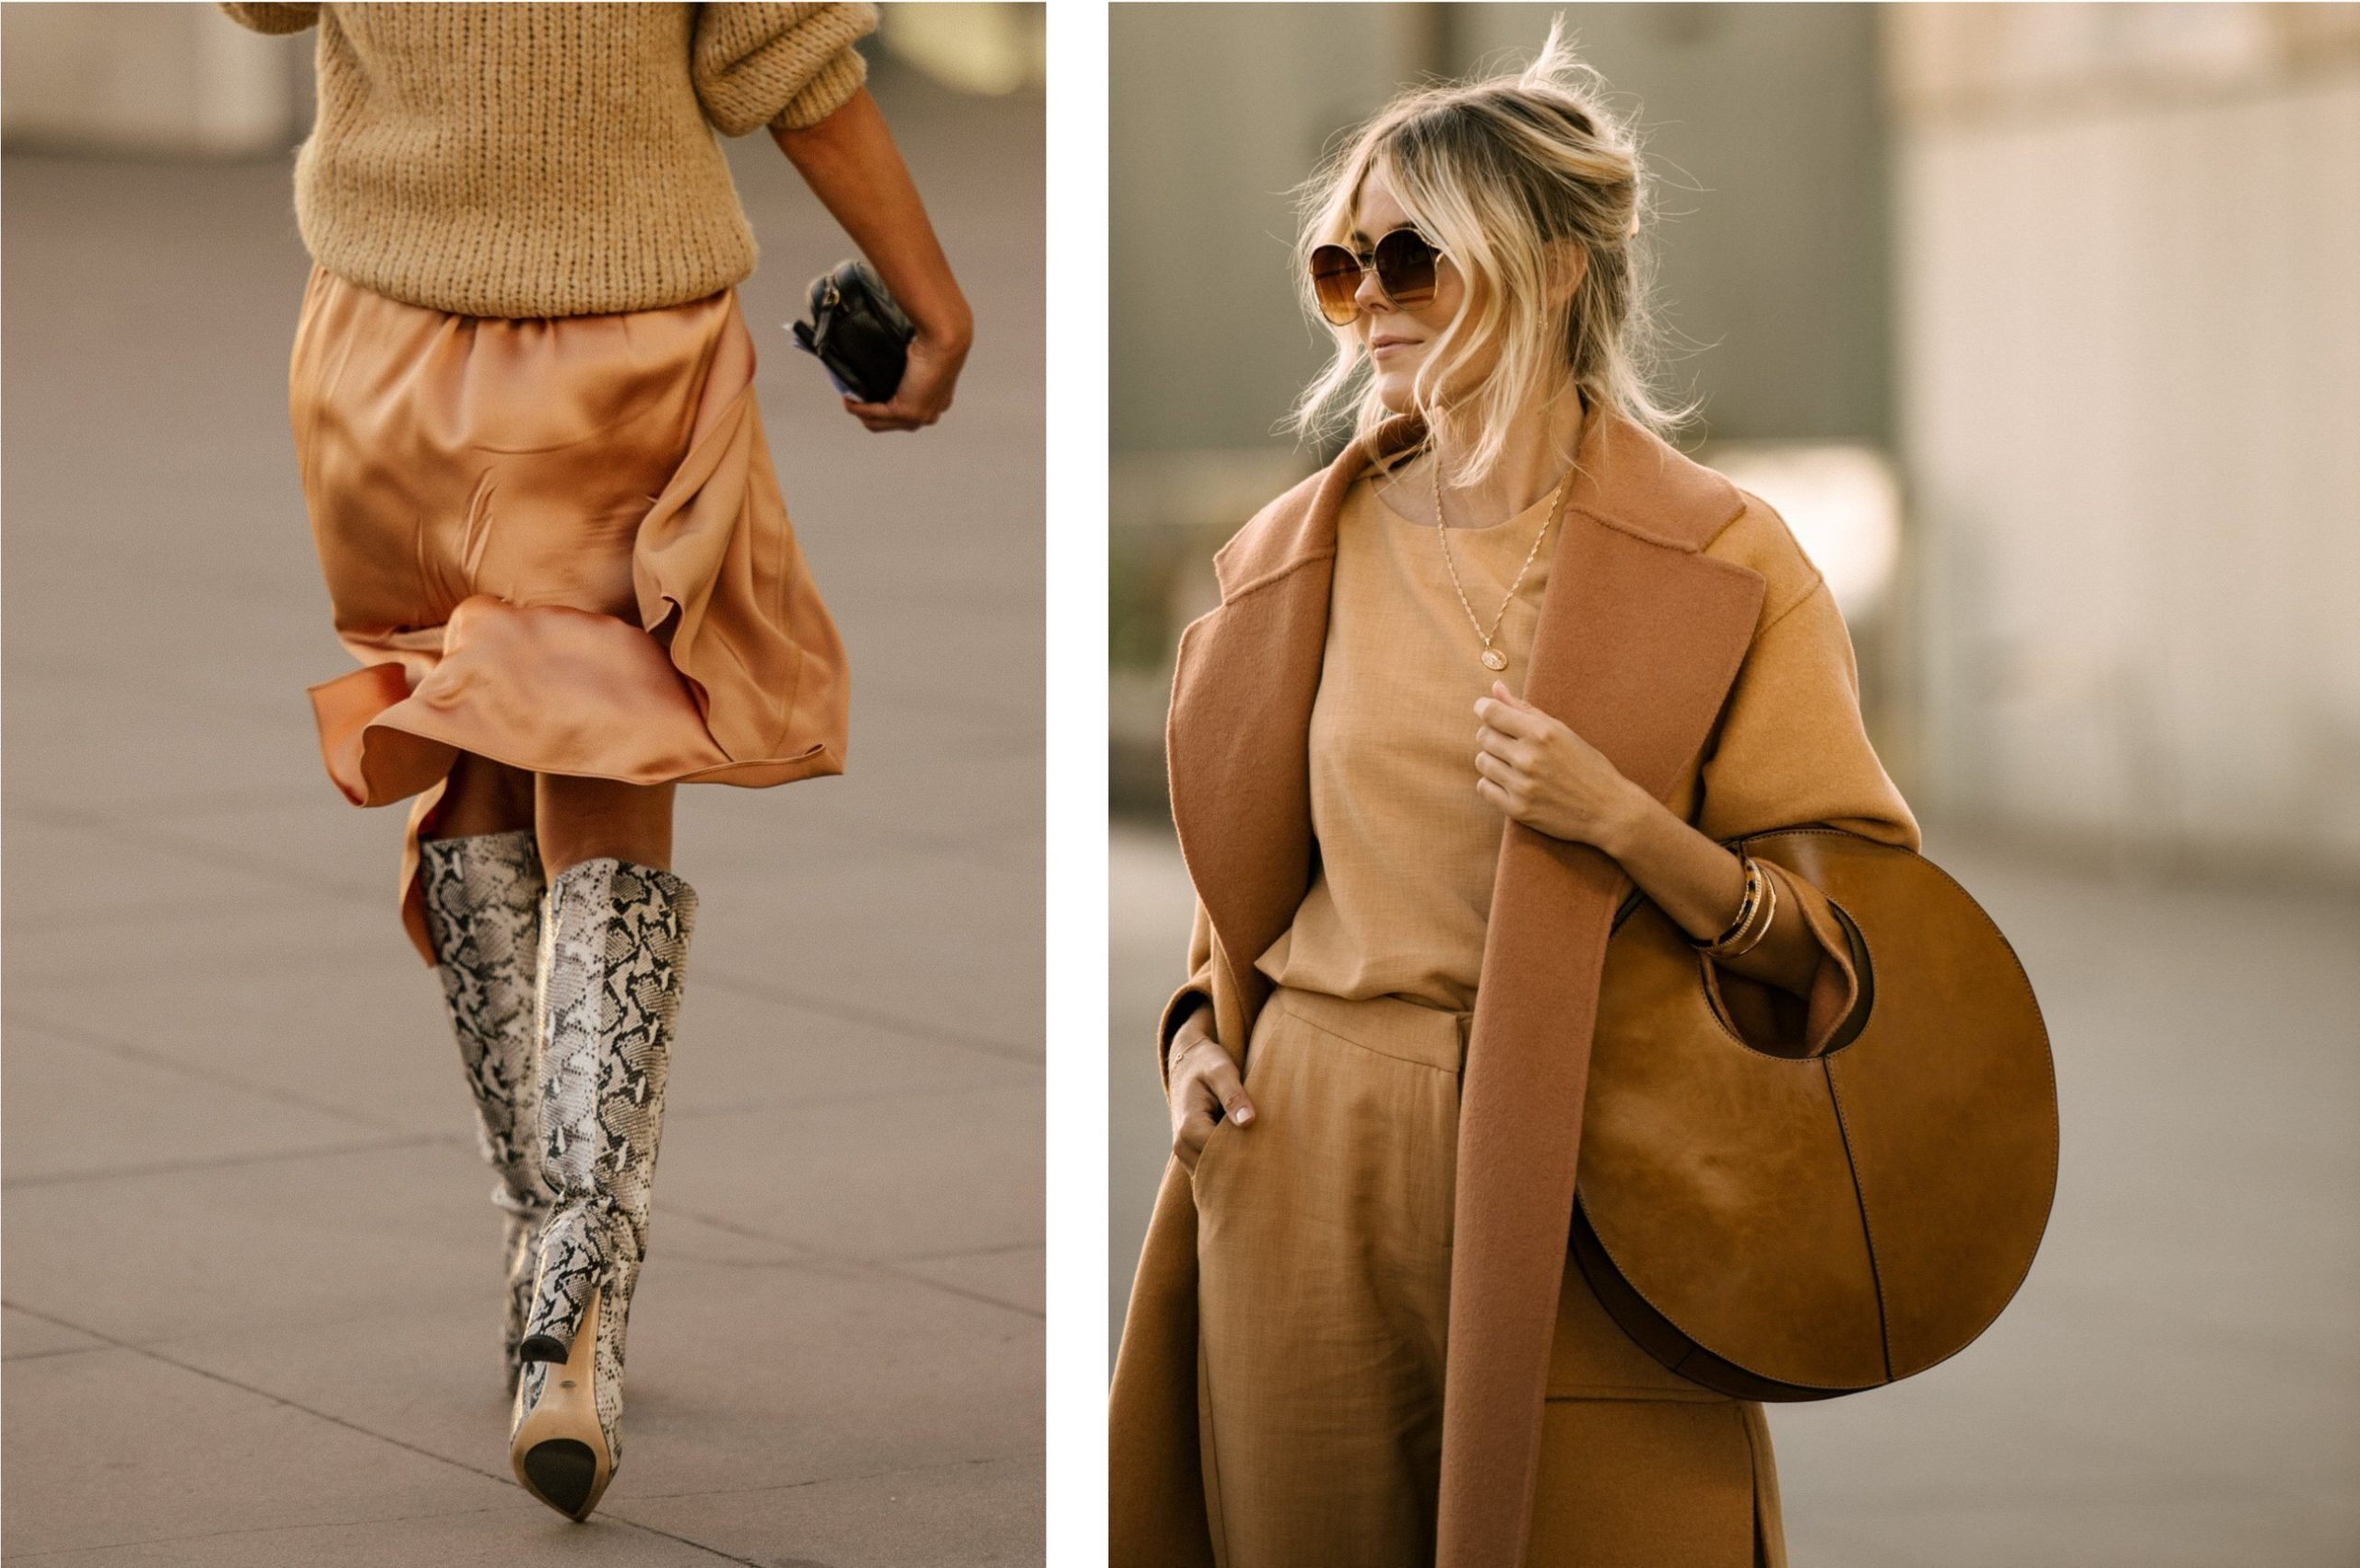 VAMFF 2019 Street Style Trends